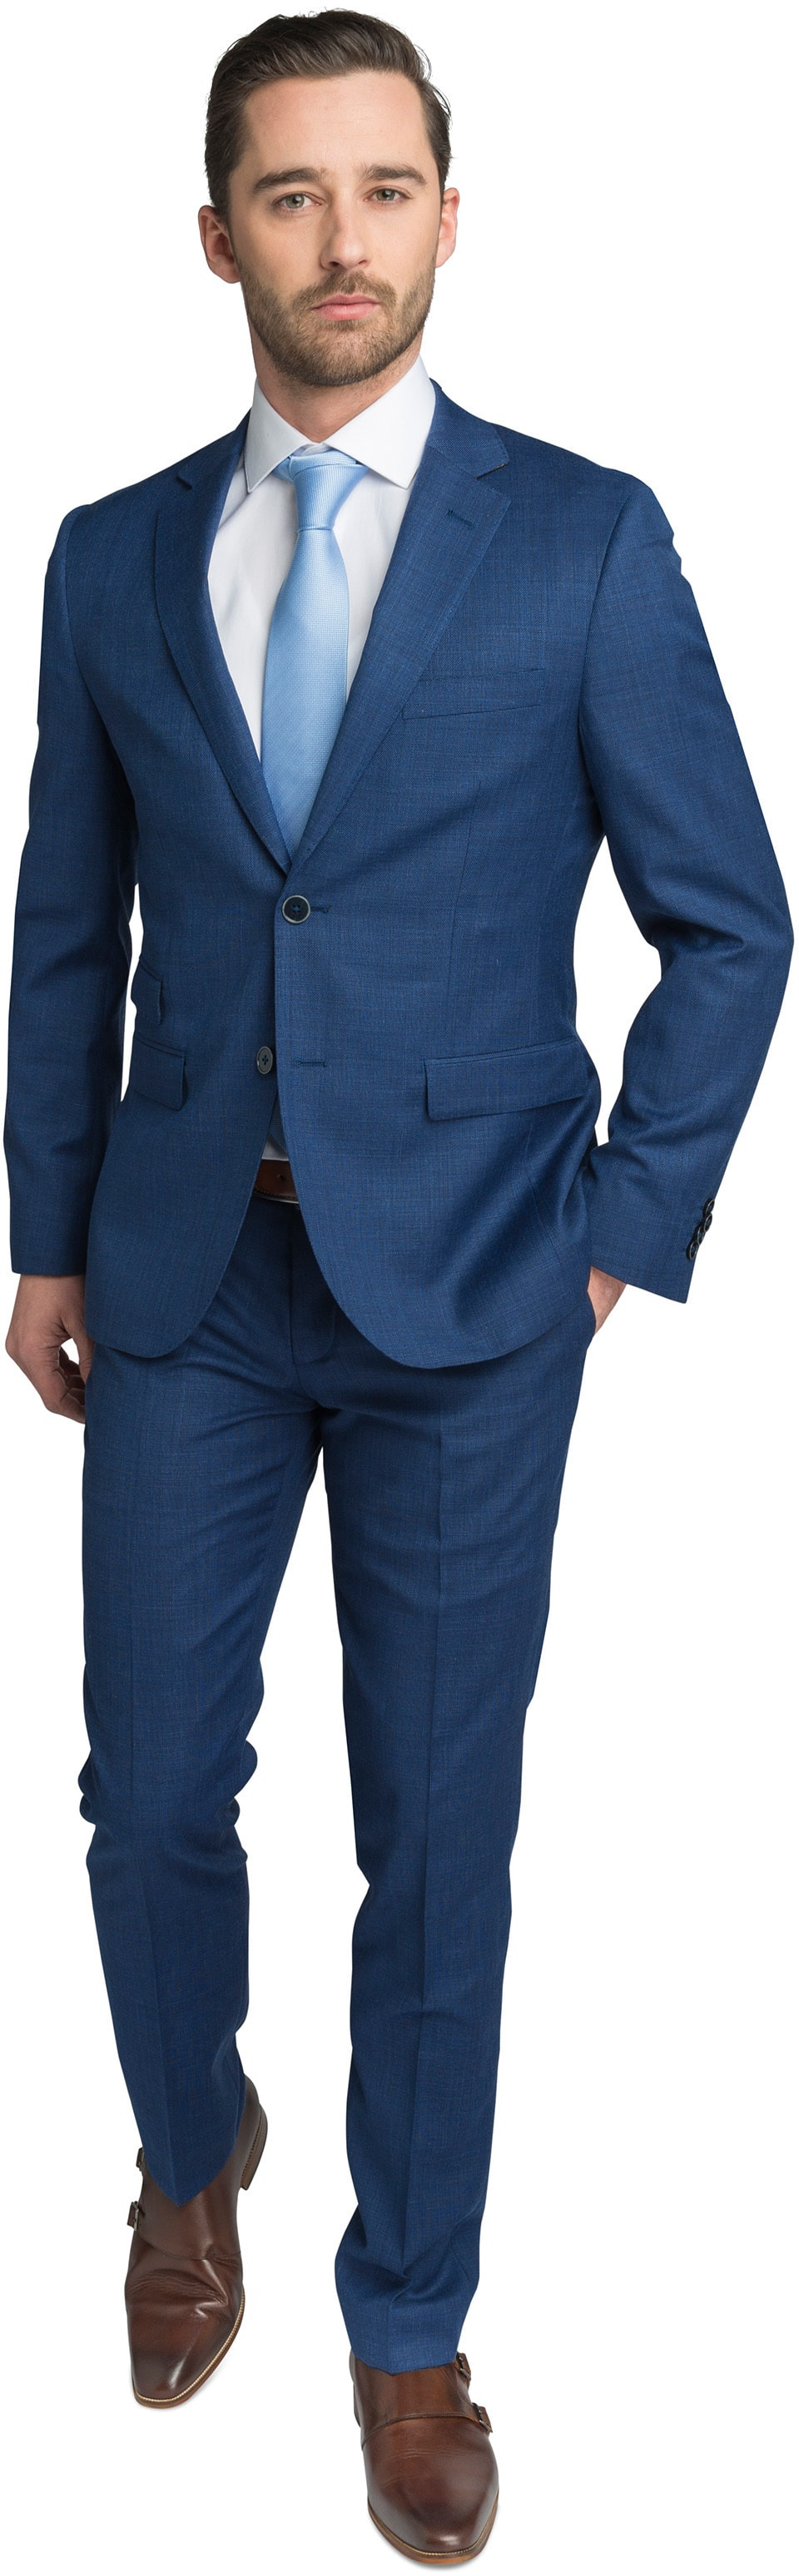 Suitable Suit Navy Lucius foto 0